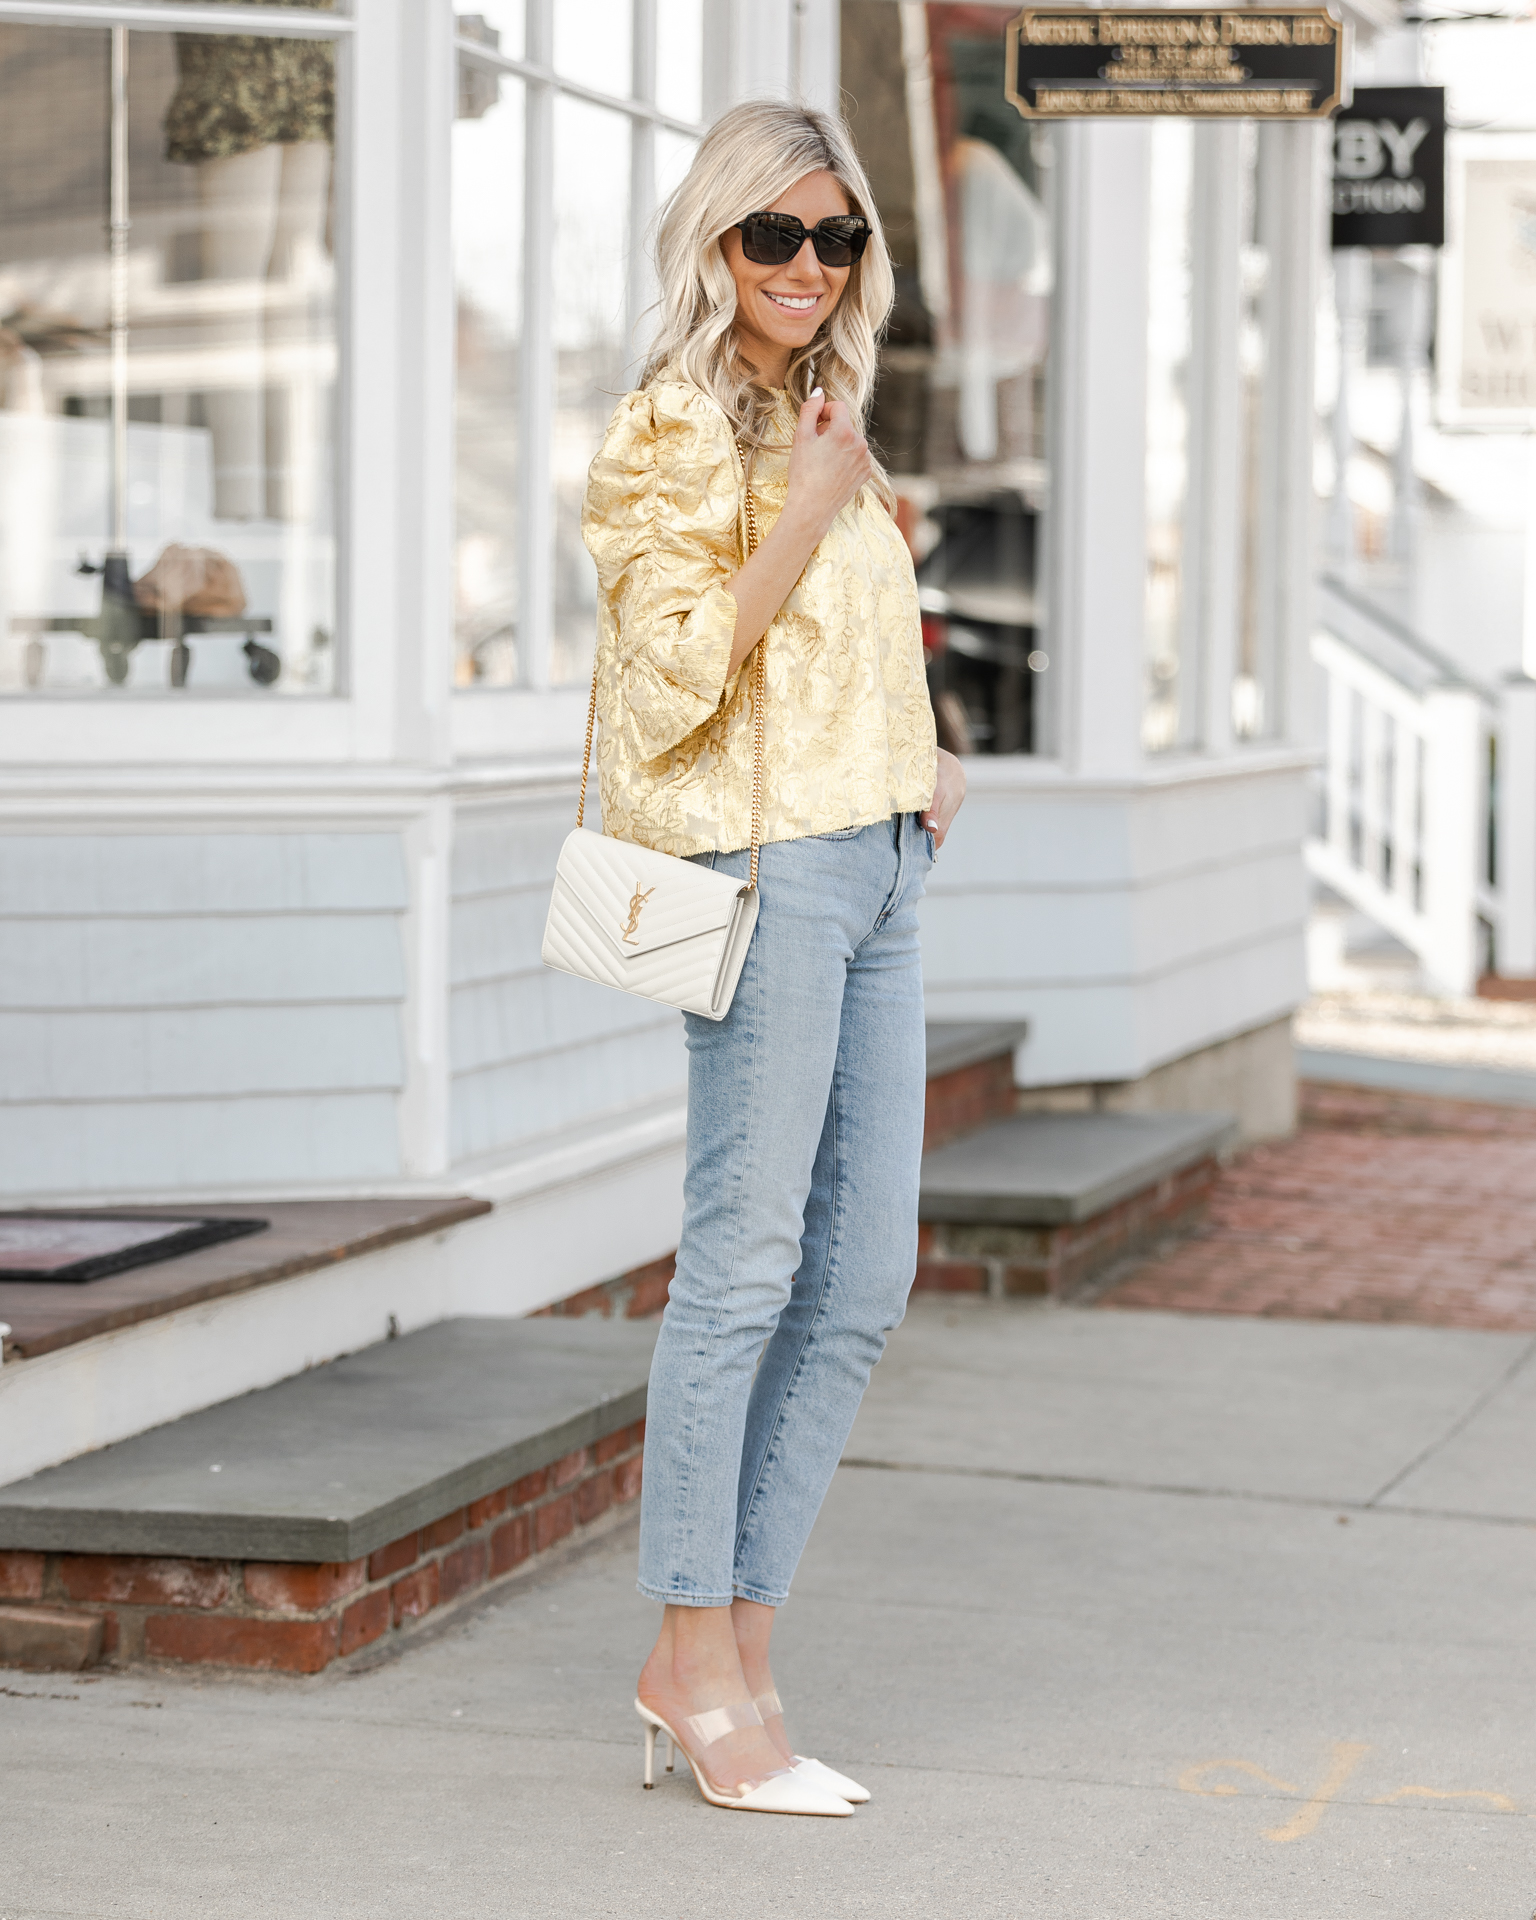 metallic-spring-top-and-jeans-the-glamorous-gal